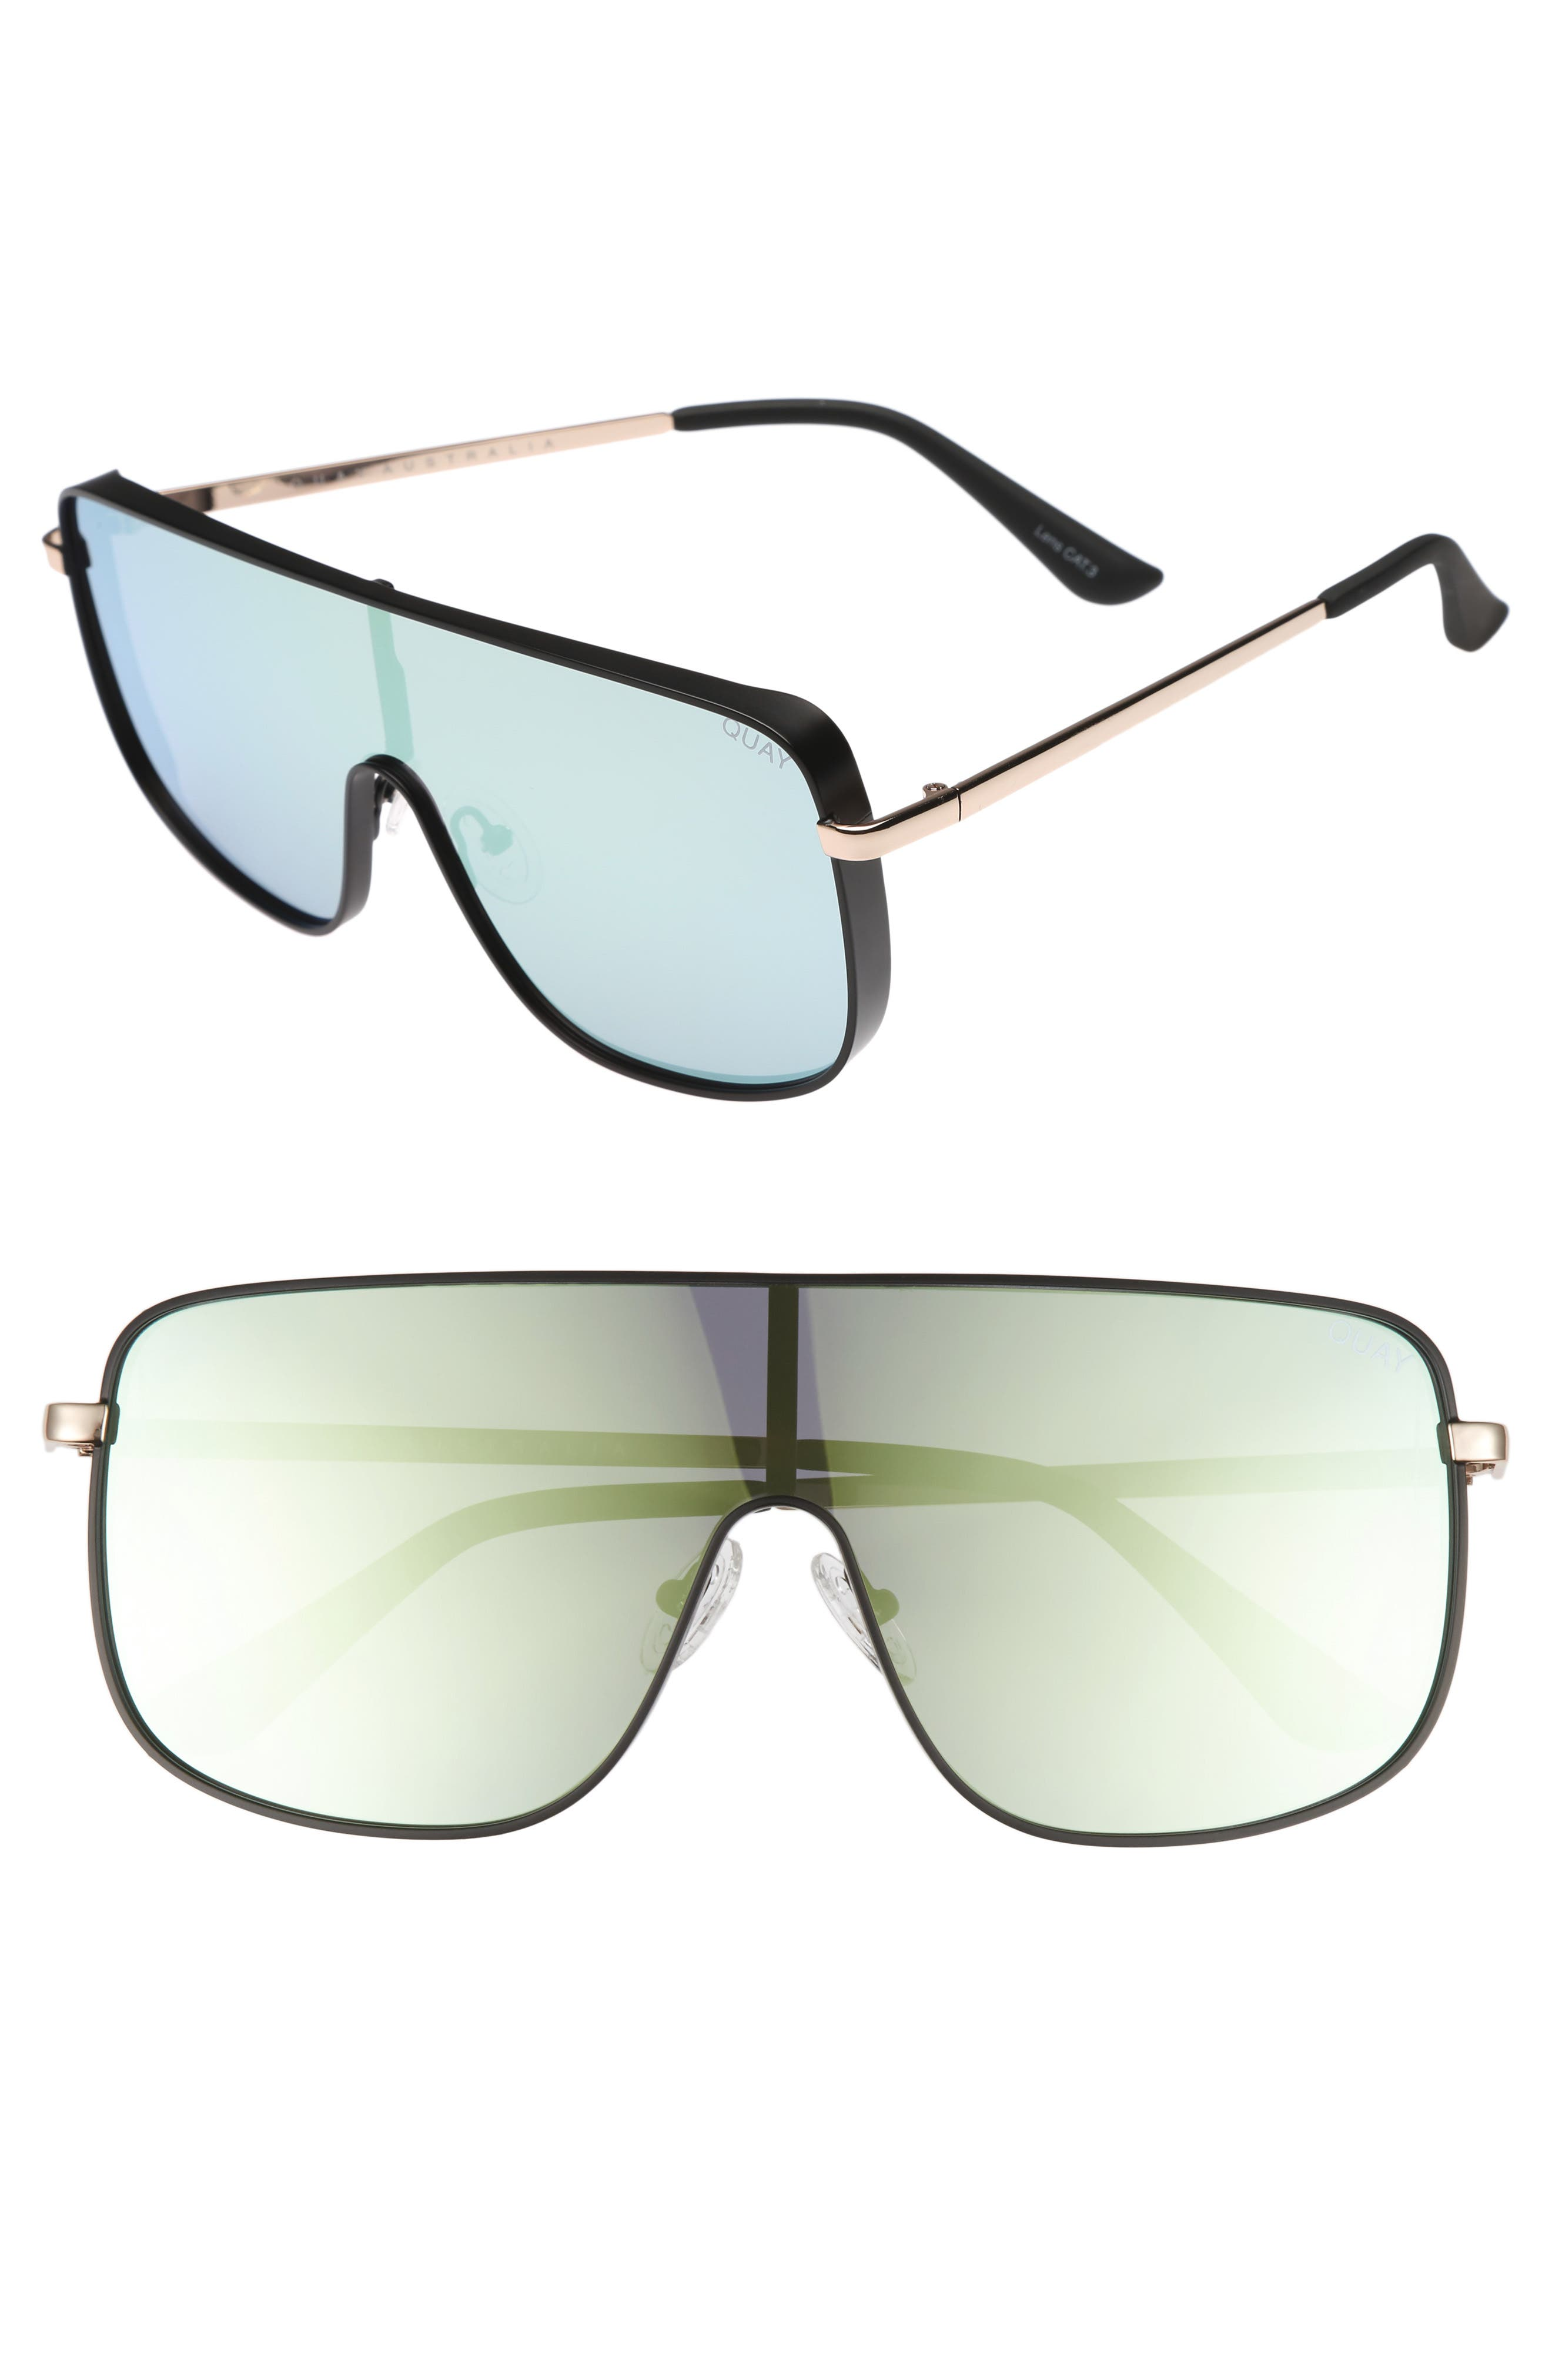 Unbothered 68mm Shield Sunglasses,                             Main thumbnail 1, color,